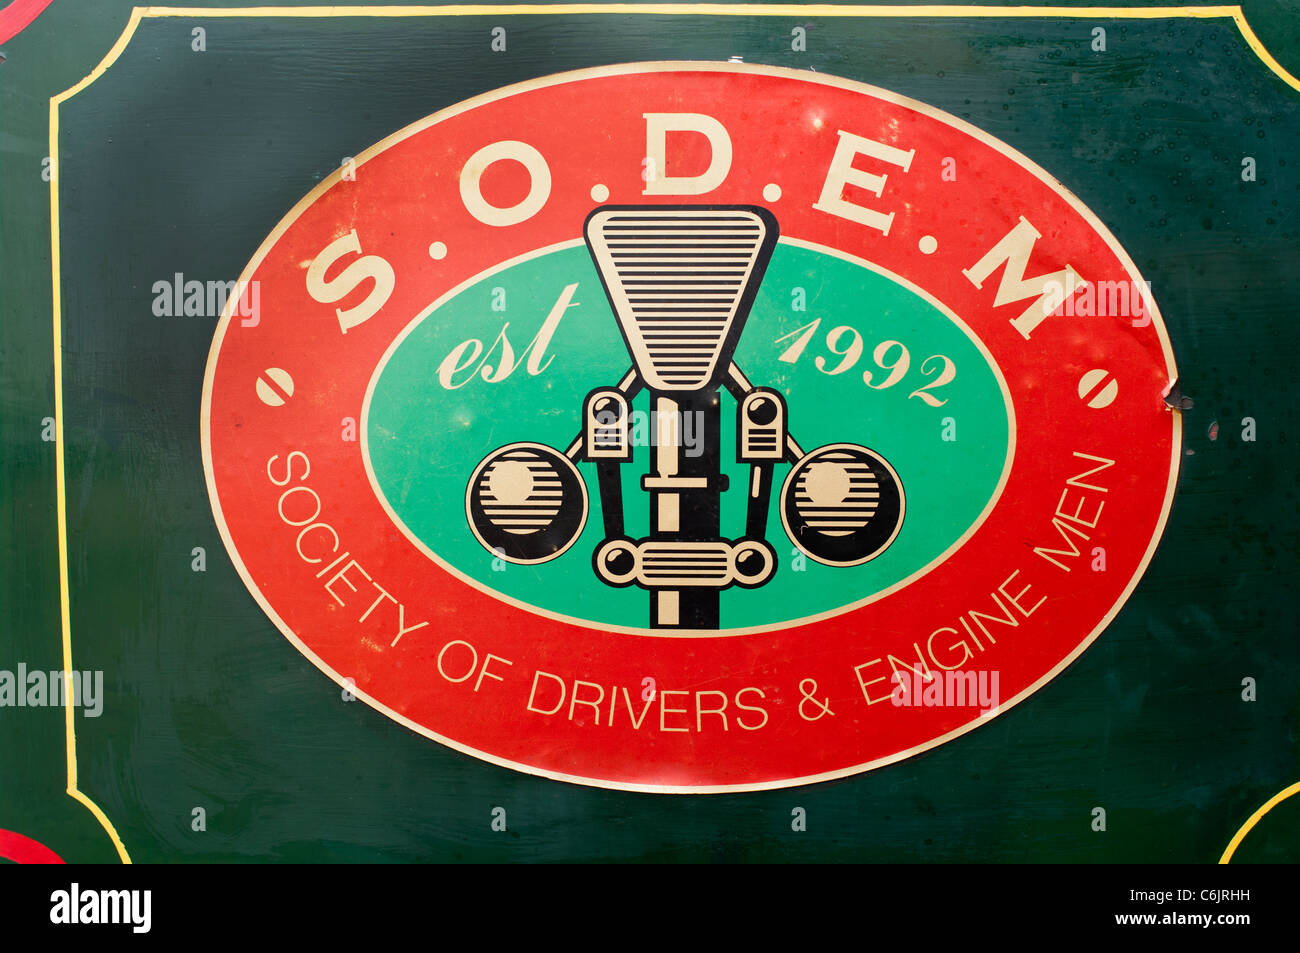 Amusing name plate on steam engine S.O.D.E.M. representing the Society of Drivers & Engine Men - Stock Image